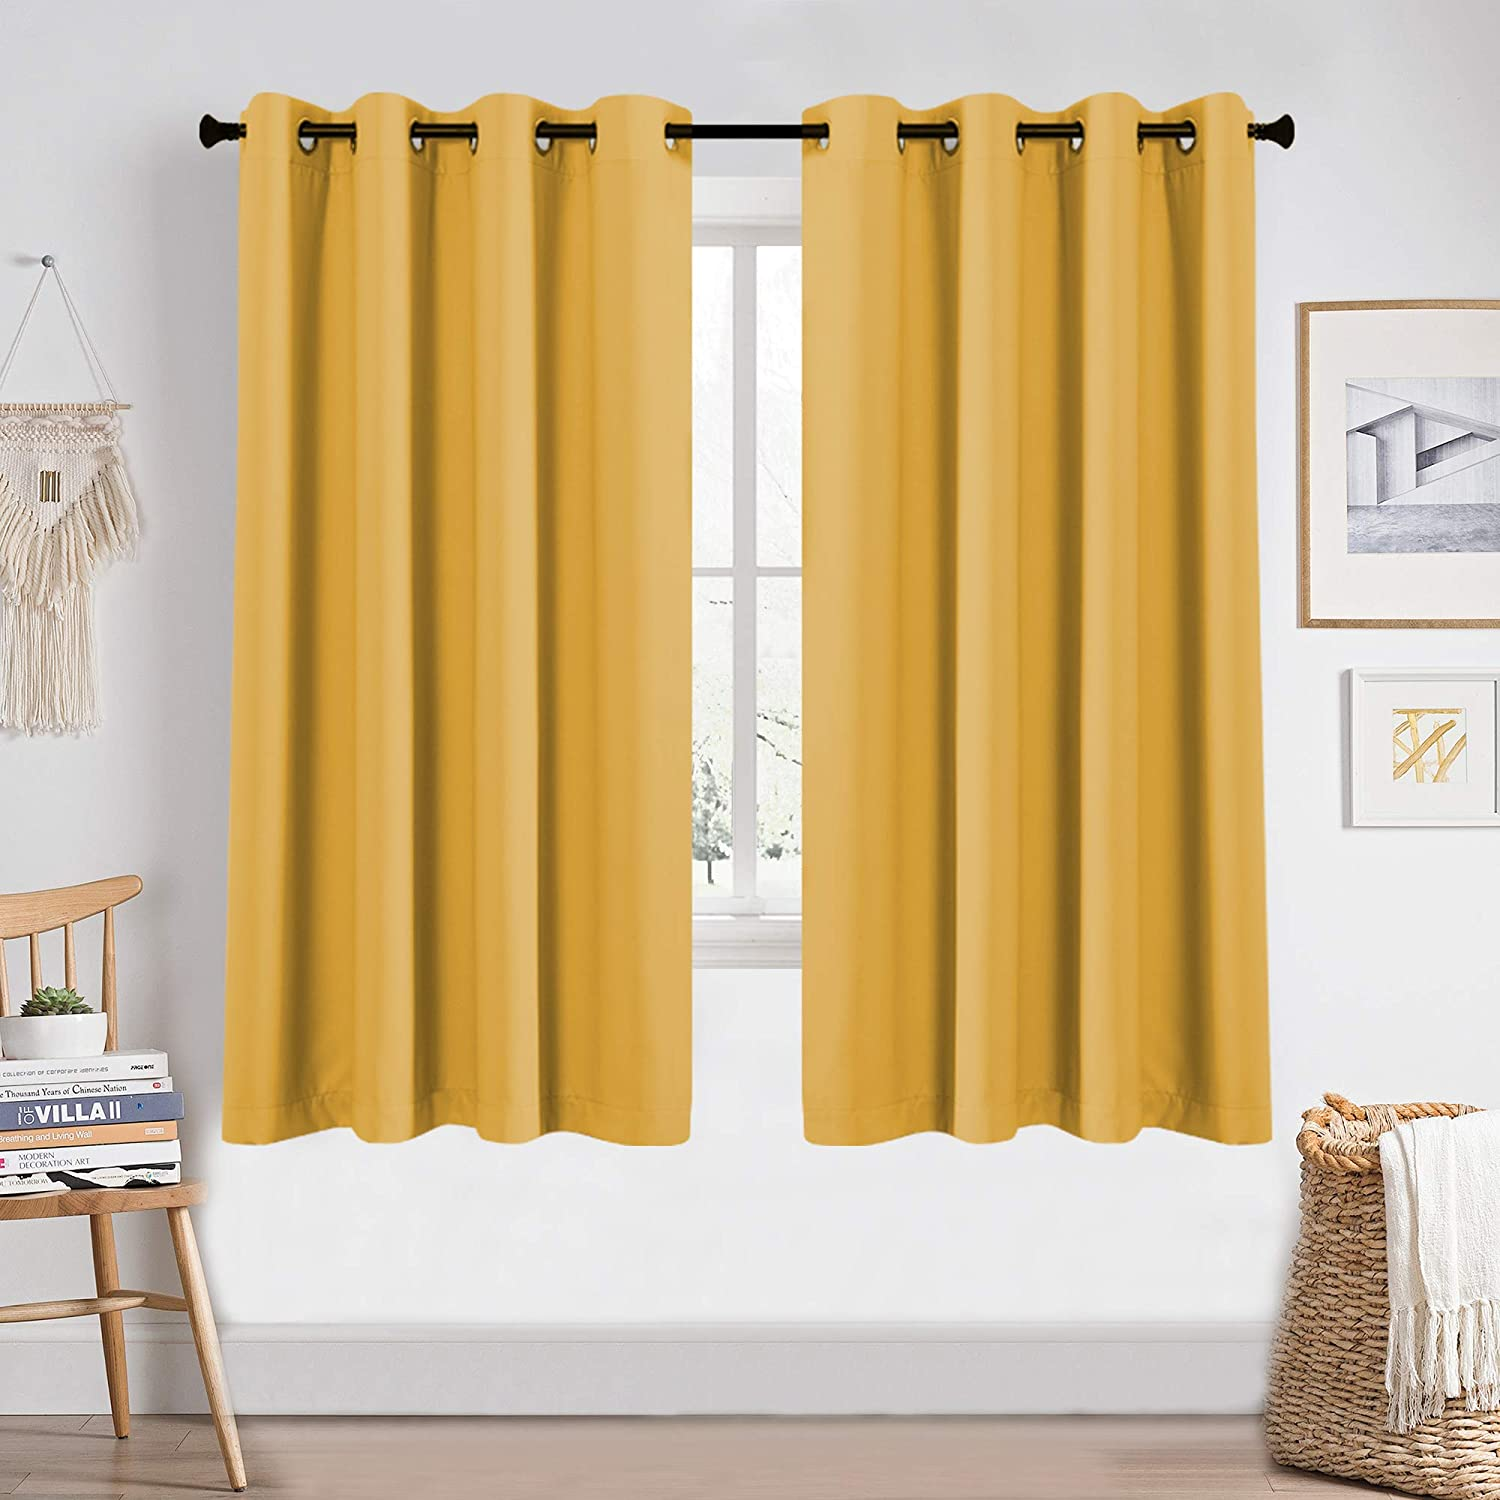 Amazon Com Blackout Yellow Curtains 63 Inches Long For Girls Room Bedroom Window Treatment Thermal Insulated Room Darkening Grommet Summer Kids Mustard Yellow Curtains Drapes For Living Room 1 Pair 52w X 63l